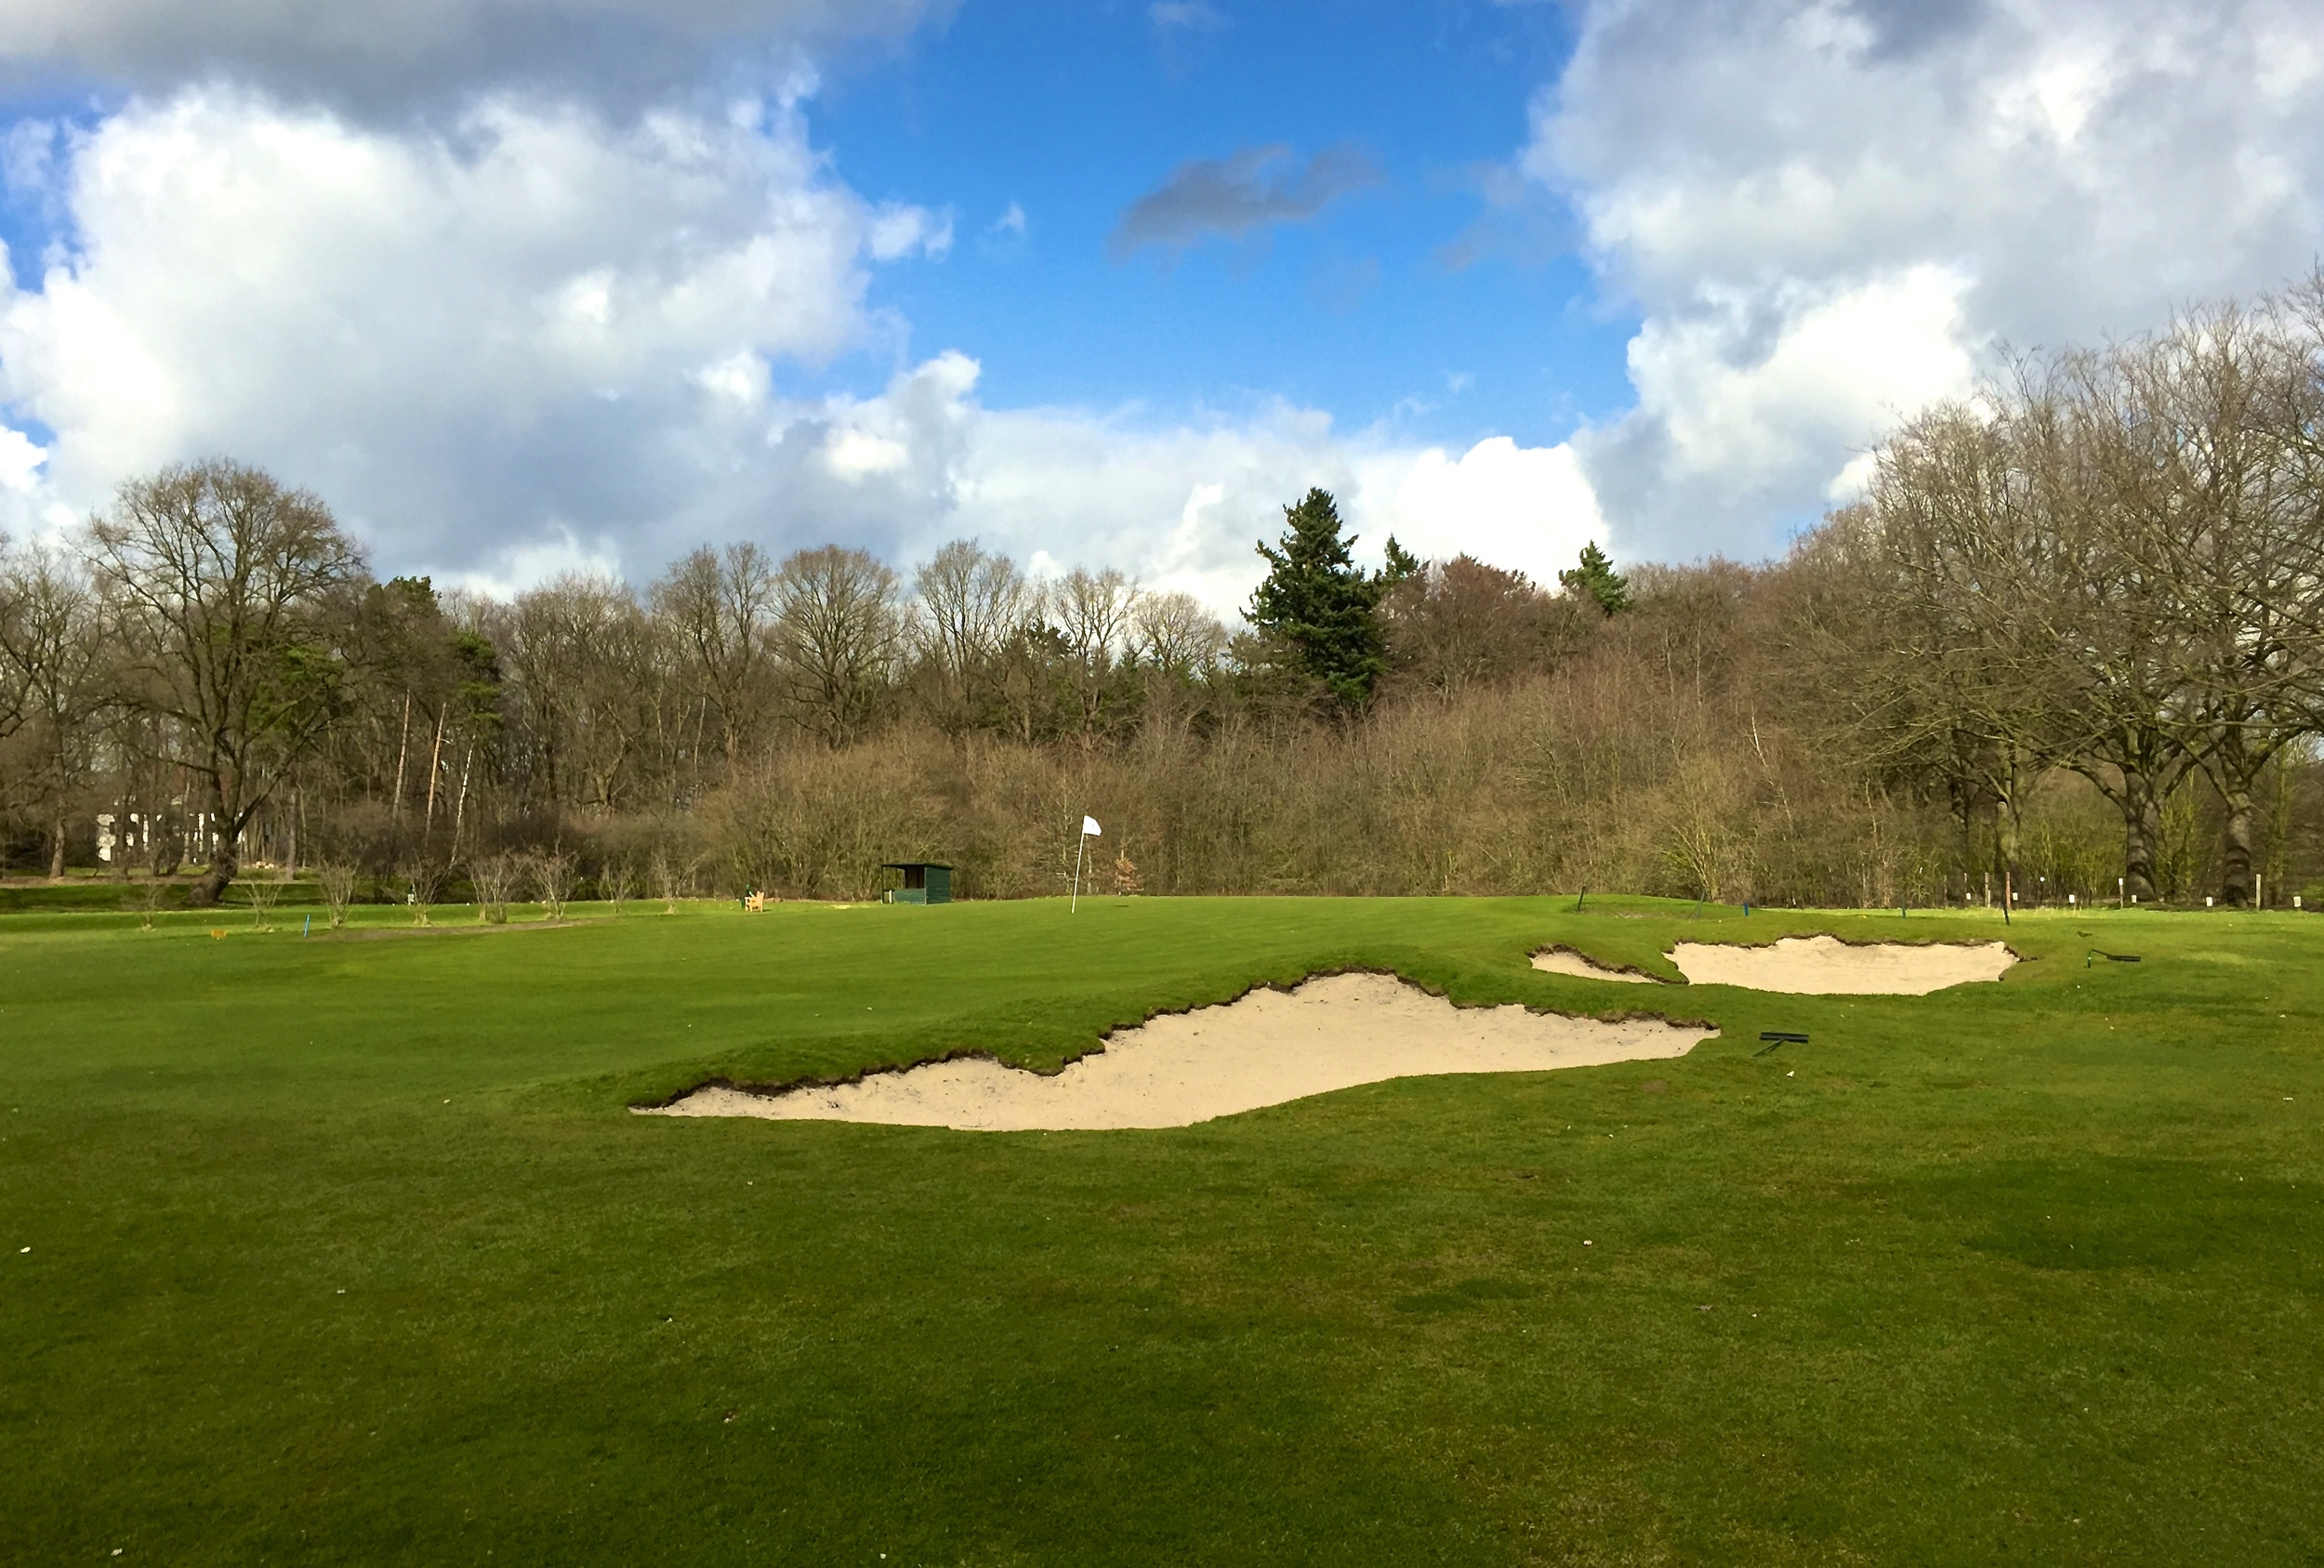 The greenside/approach bunkers of the 4th hole after.